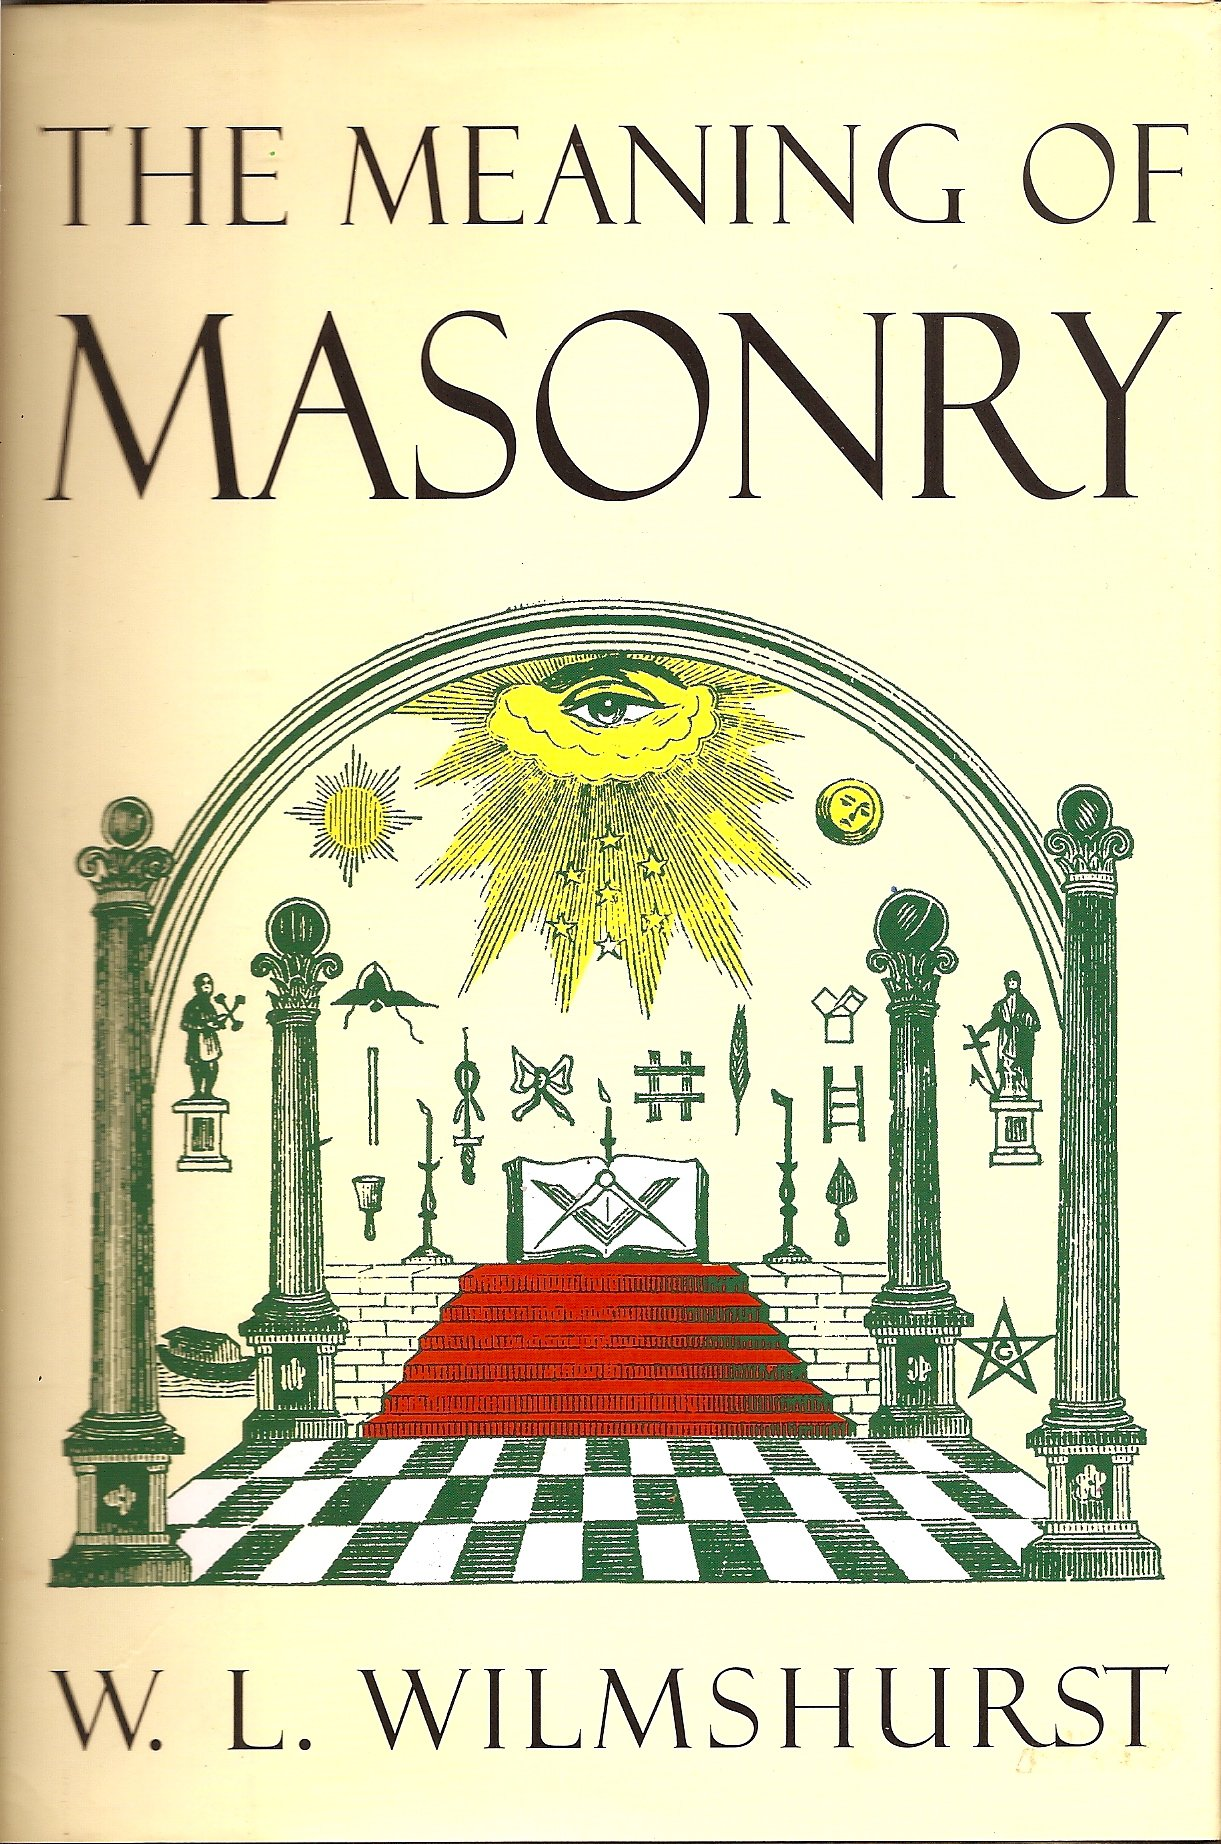 The Meaning of Masonry, W. L. Wilmshurst